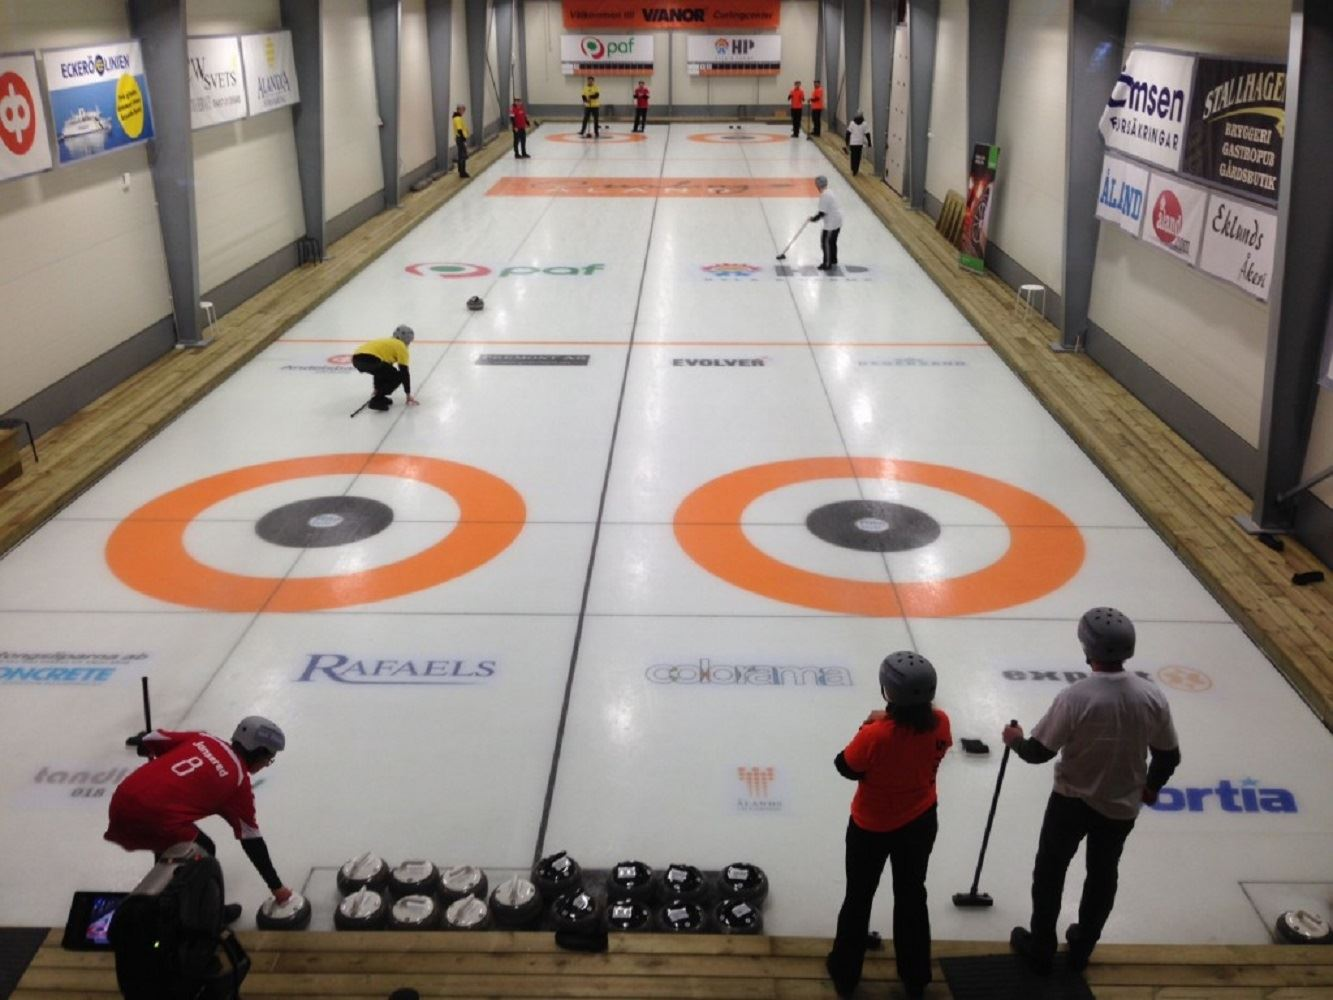 Åland Curling